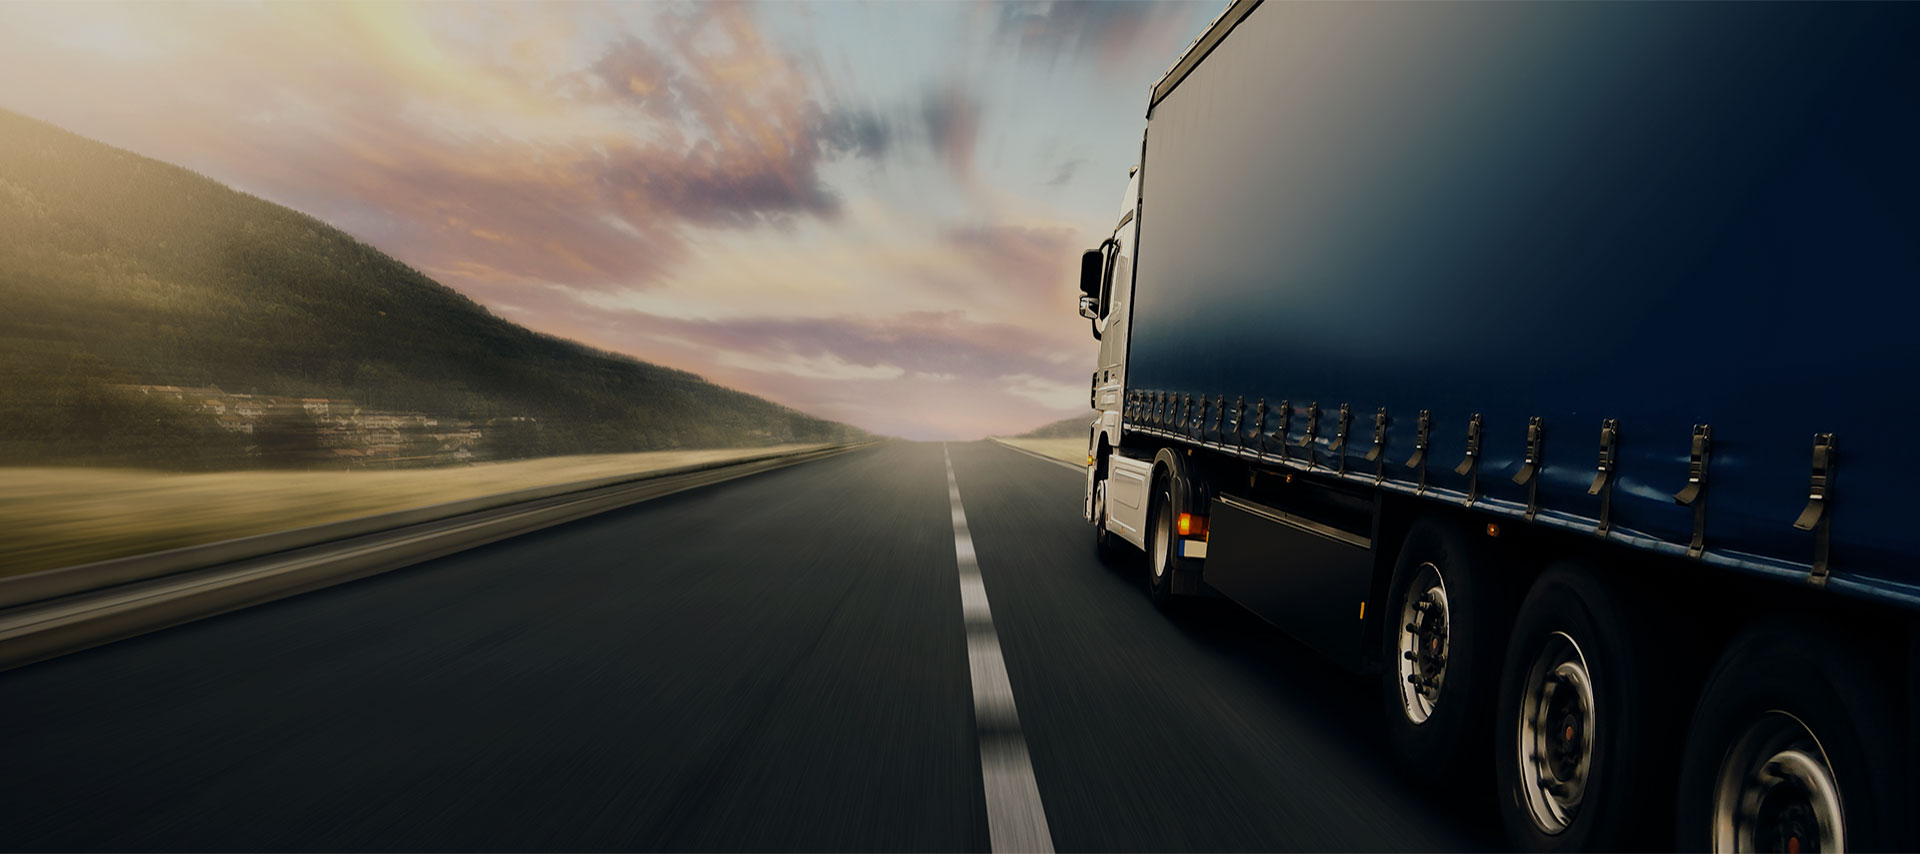 UNBEATABLE TRANSPORT AND LOGISTICS SERVICES